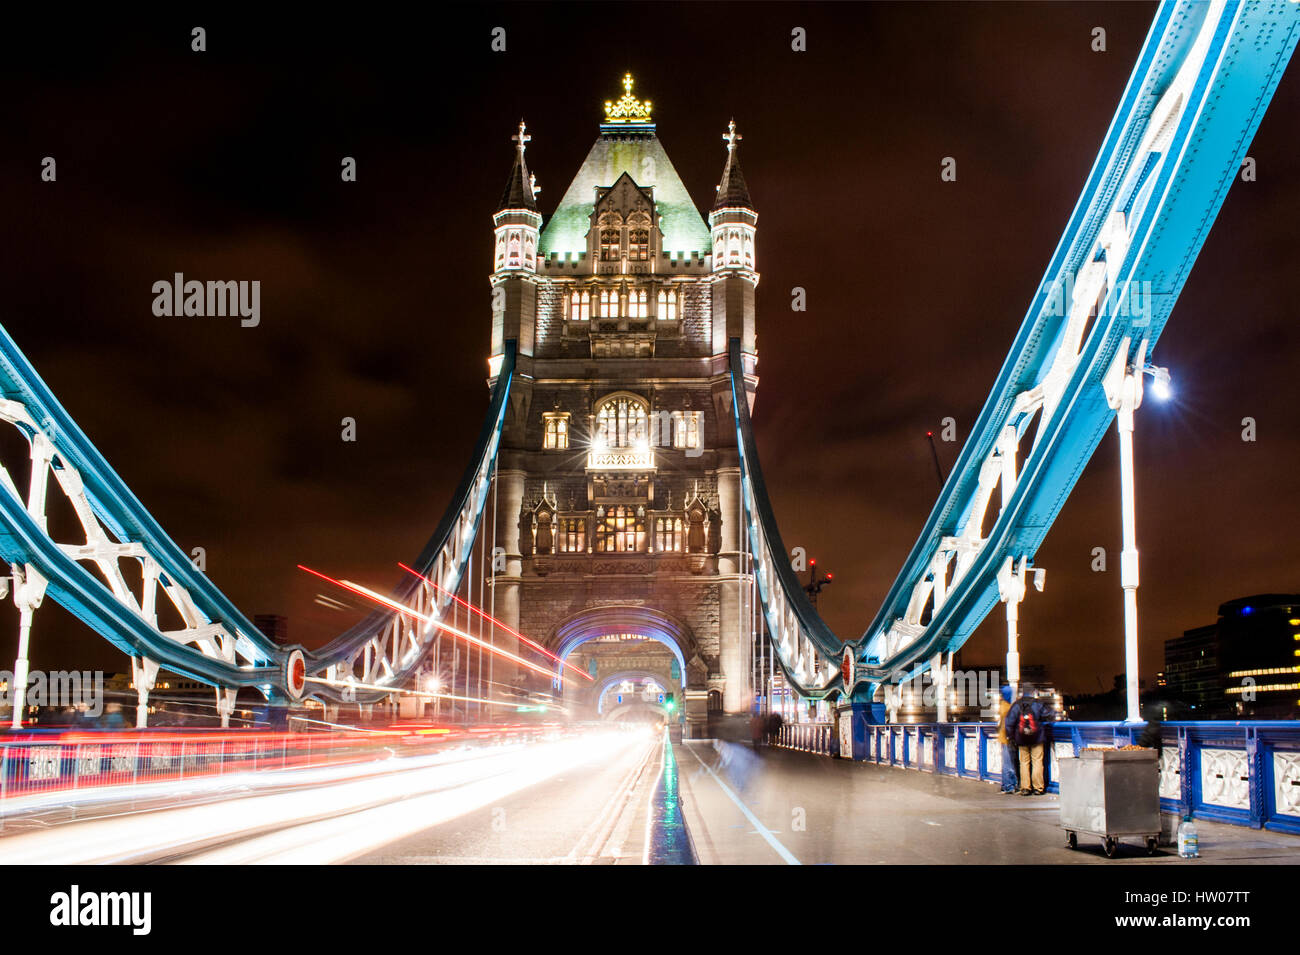 Tower Bridge of London at night - UK - Stock Image